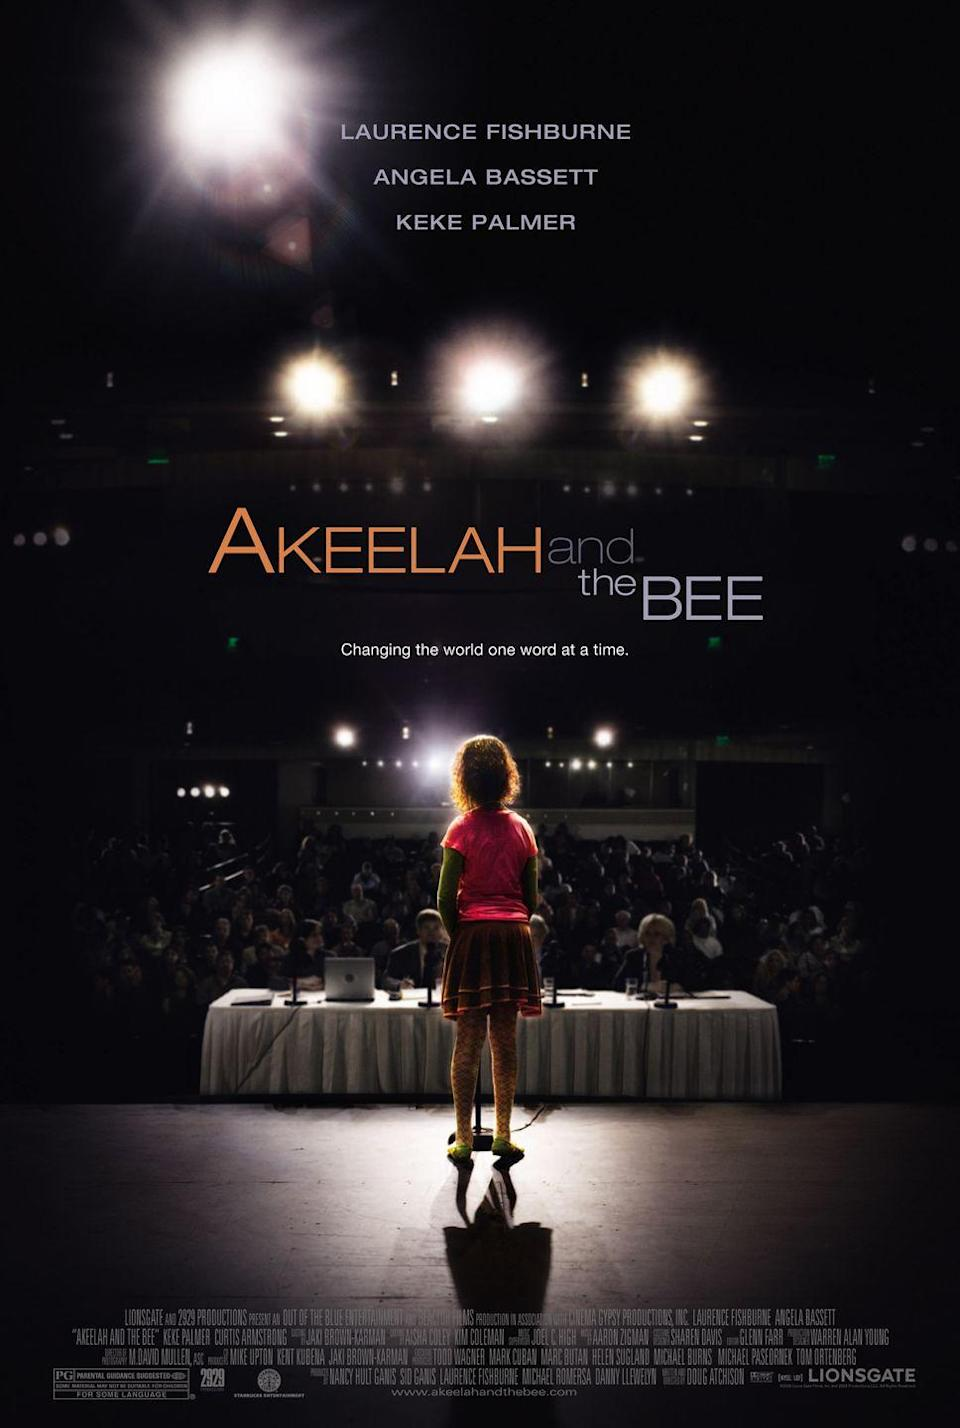 "<p><a class=""link rapid-noclick-resp"" href=""https://www.hbo.com/movies/akeelah-and-the-bee"" rel=""nofollow noopener"" target=""_blank"" data-ylk=""slk:STREAM NOW"">STREAM NOW</a></p><p>This sweet movie revolves around 11-year-old Akeelah Anderson, a spelling enthusiast who prepares to compete in the Scripps National Spelling Bee, despite coming from a lower socioeconomic background than her competitors. Akeelah feels pressure from her predominantly-Black neighborhood to succeed and faces racism from her competitors' parents, but still she manages to keep her eye on the prize. </p>"